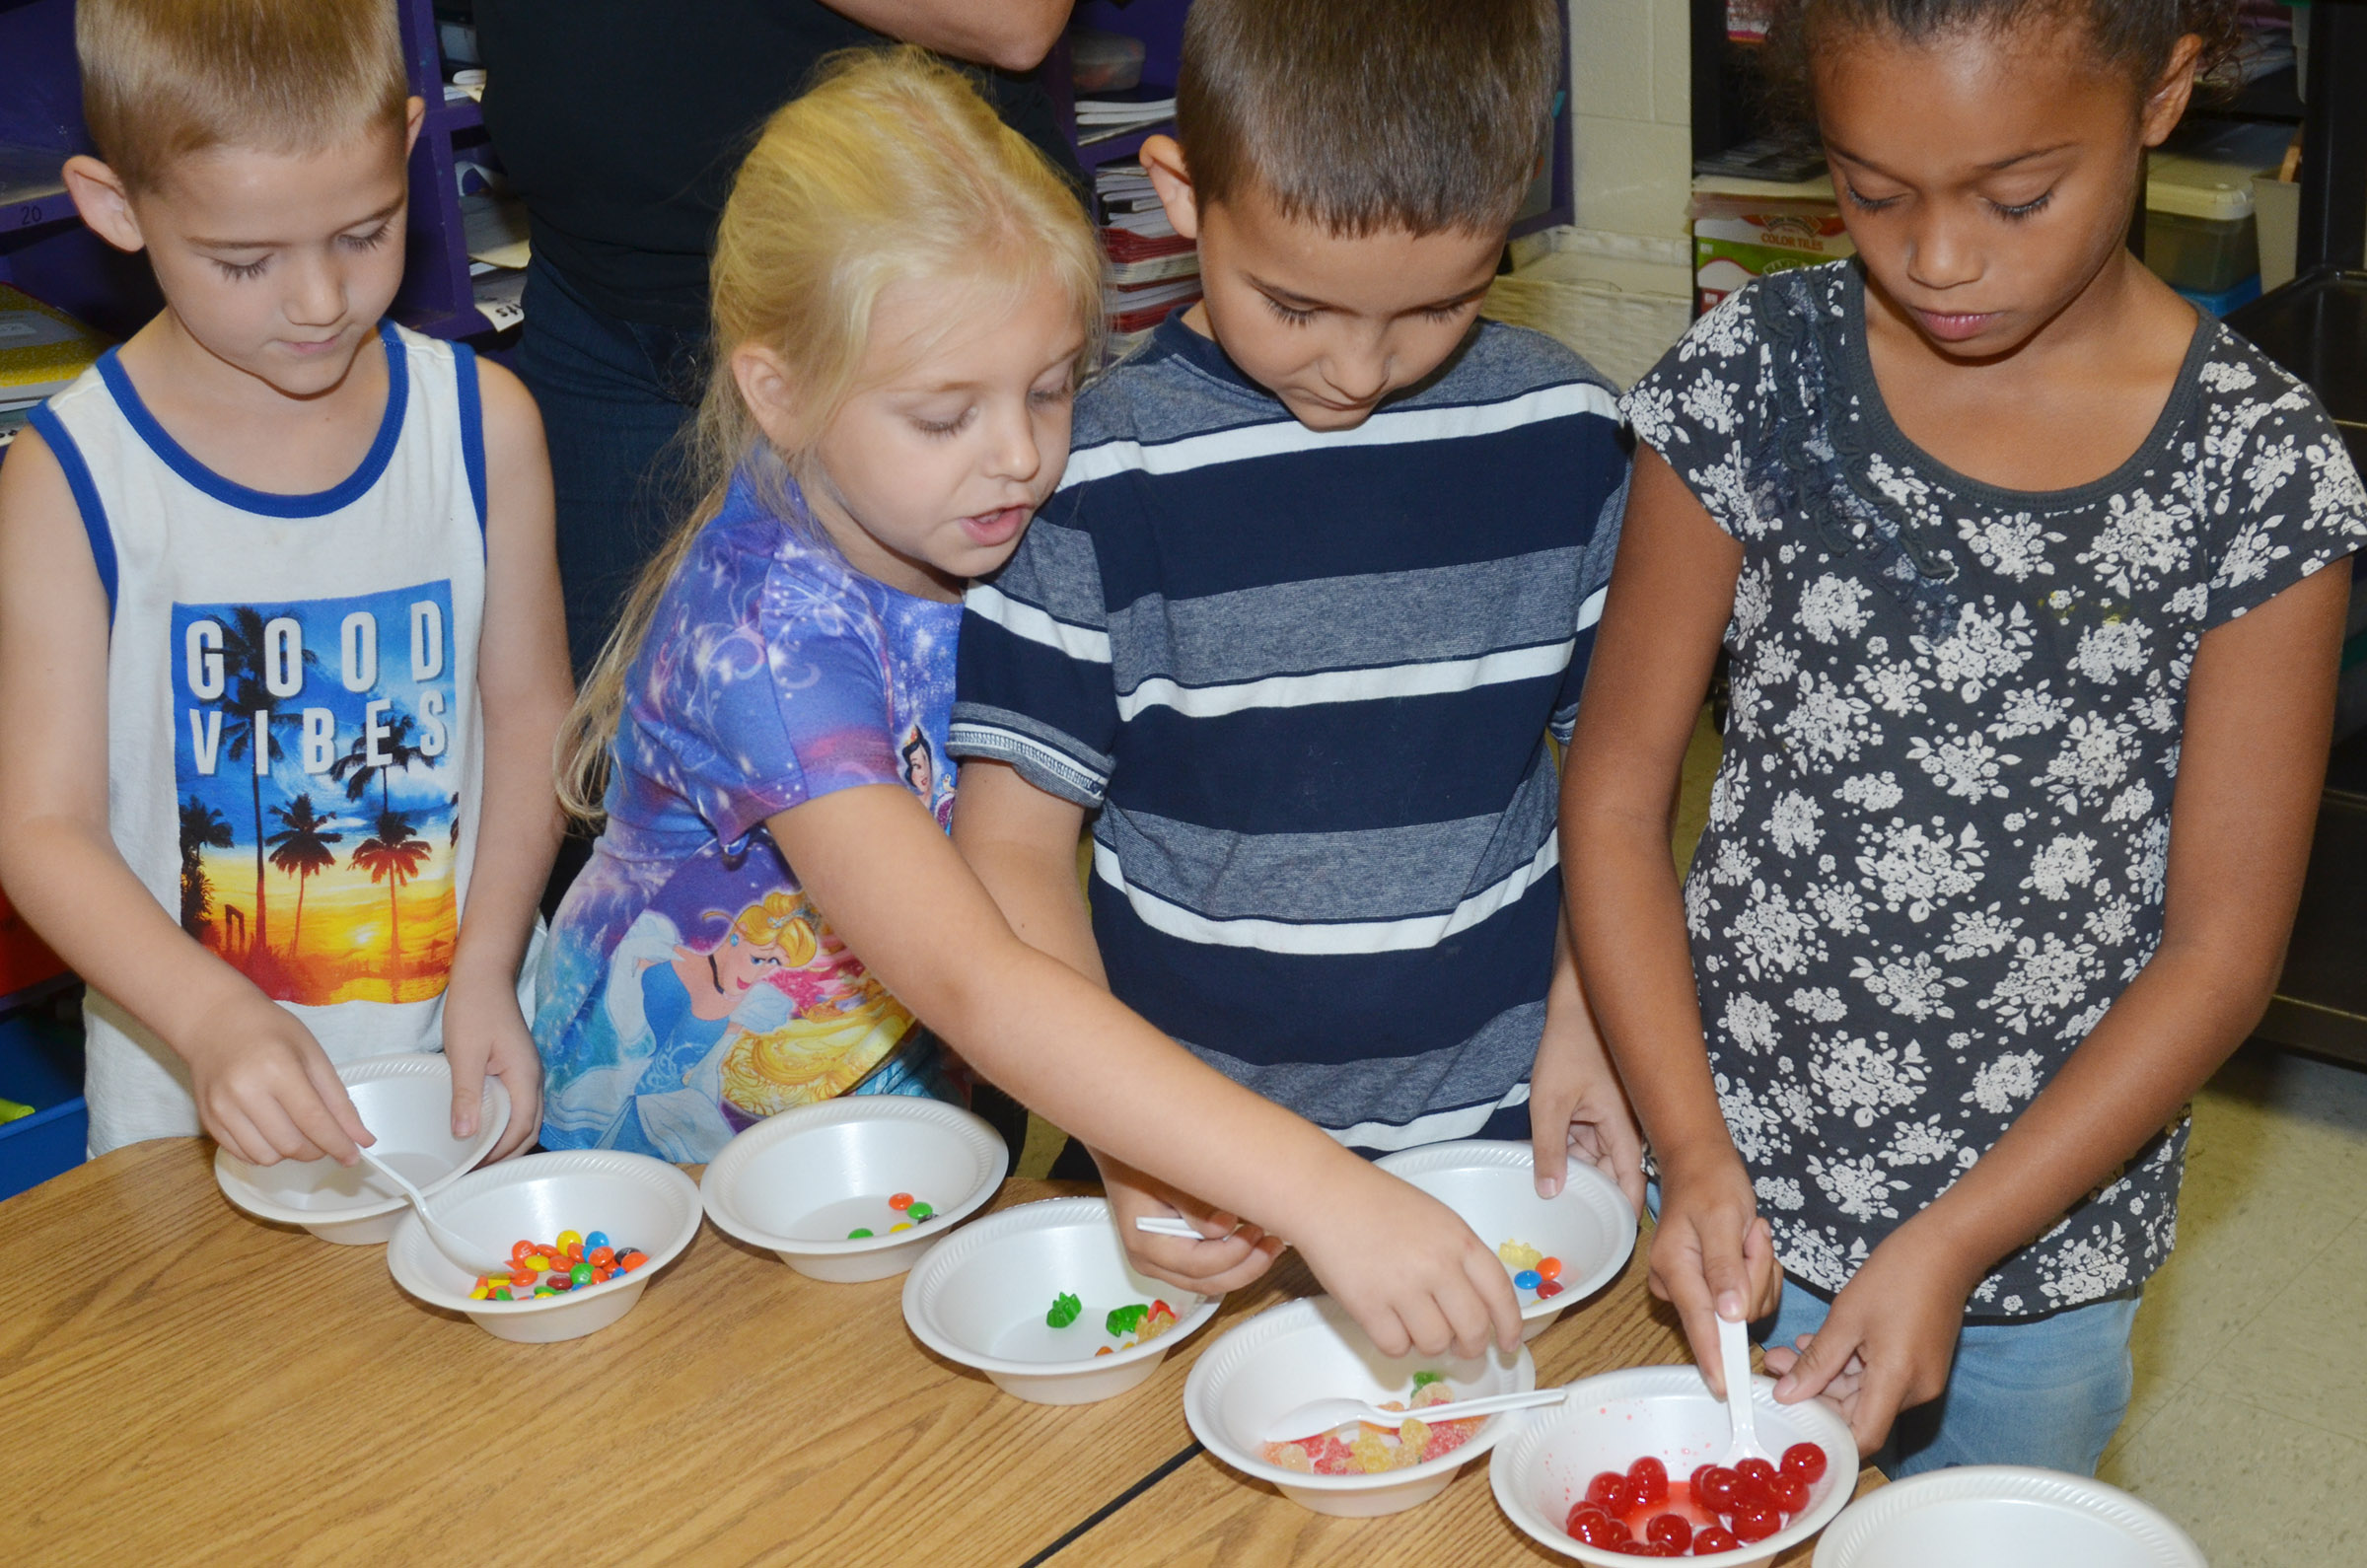 CES first-graders, from left, Mason Edwards, Aubrey Novak, Josiah Edwards and Jyra Welch get toppings for their ice cream sundaes.